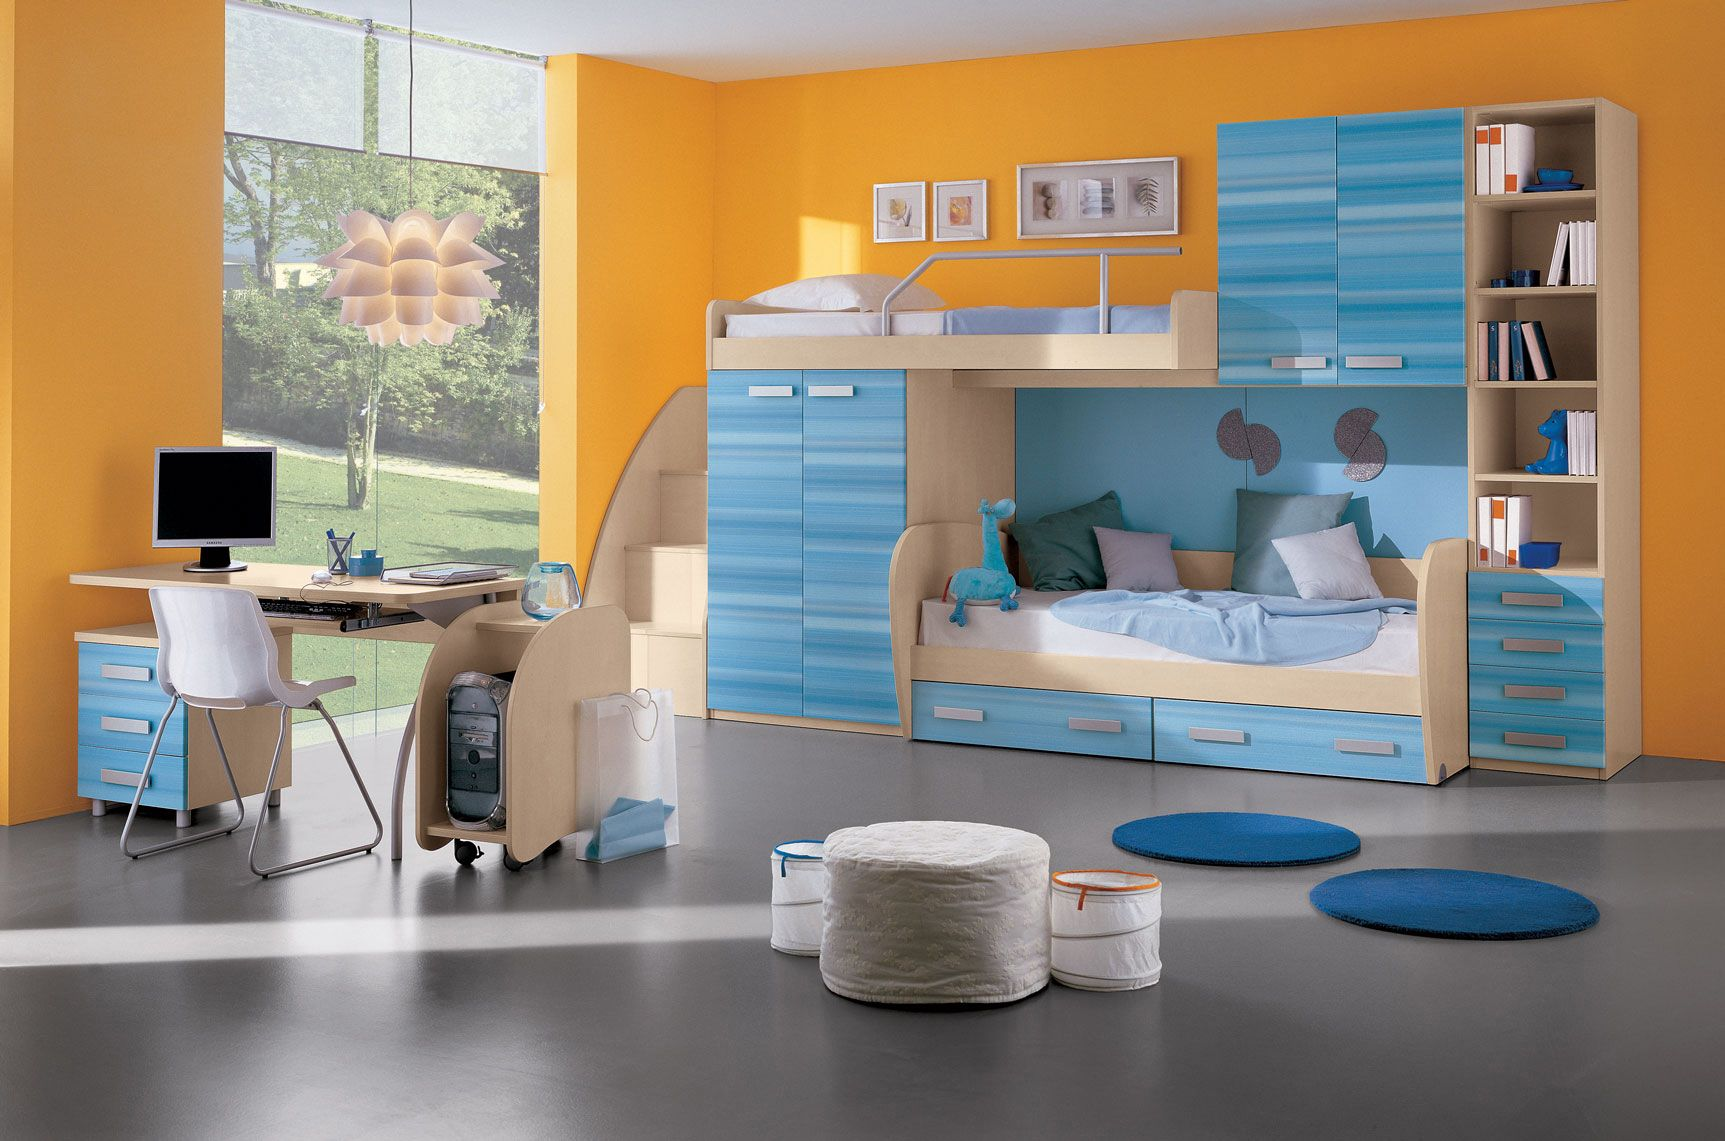 cool bedroom ideas for pre-teen boy | Bedroom Boys with Nuance ...